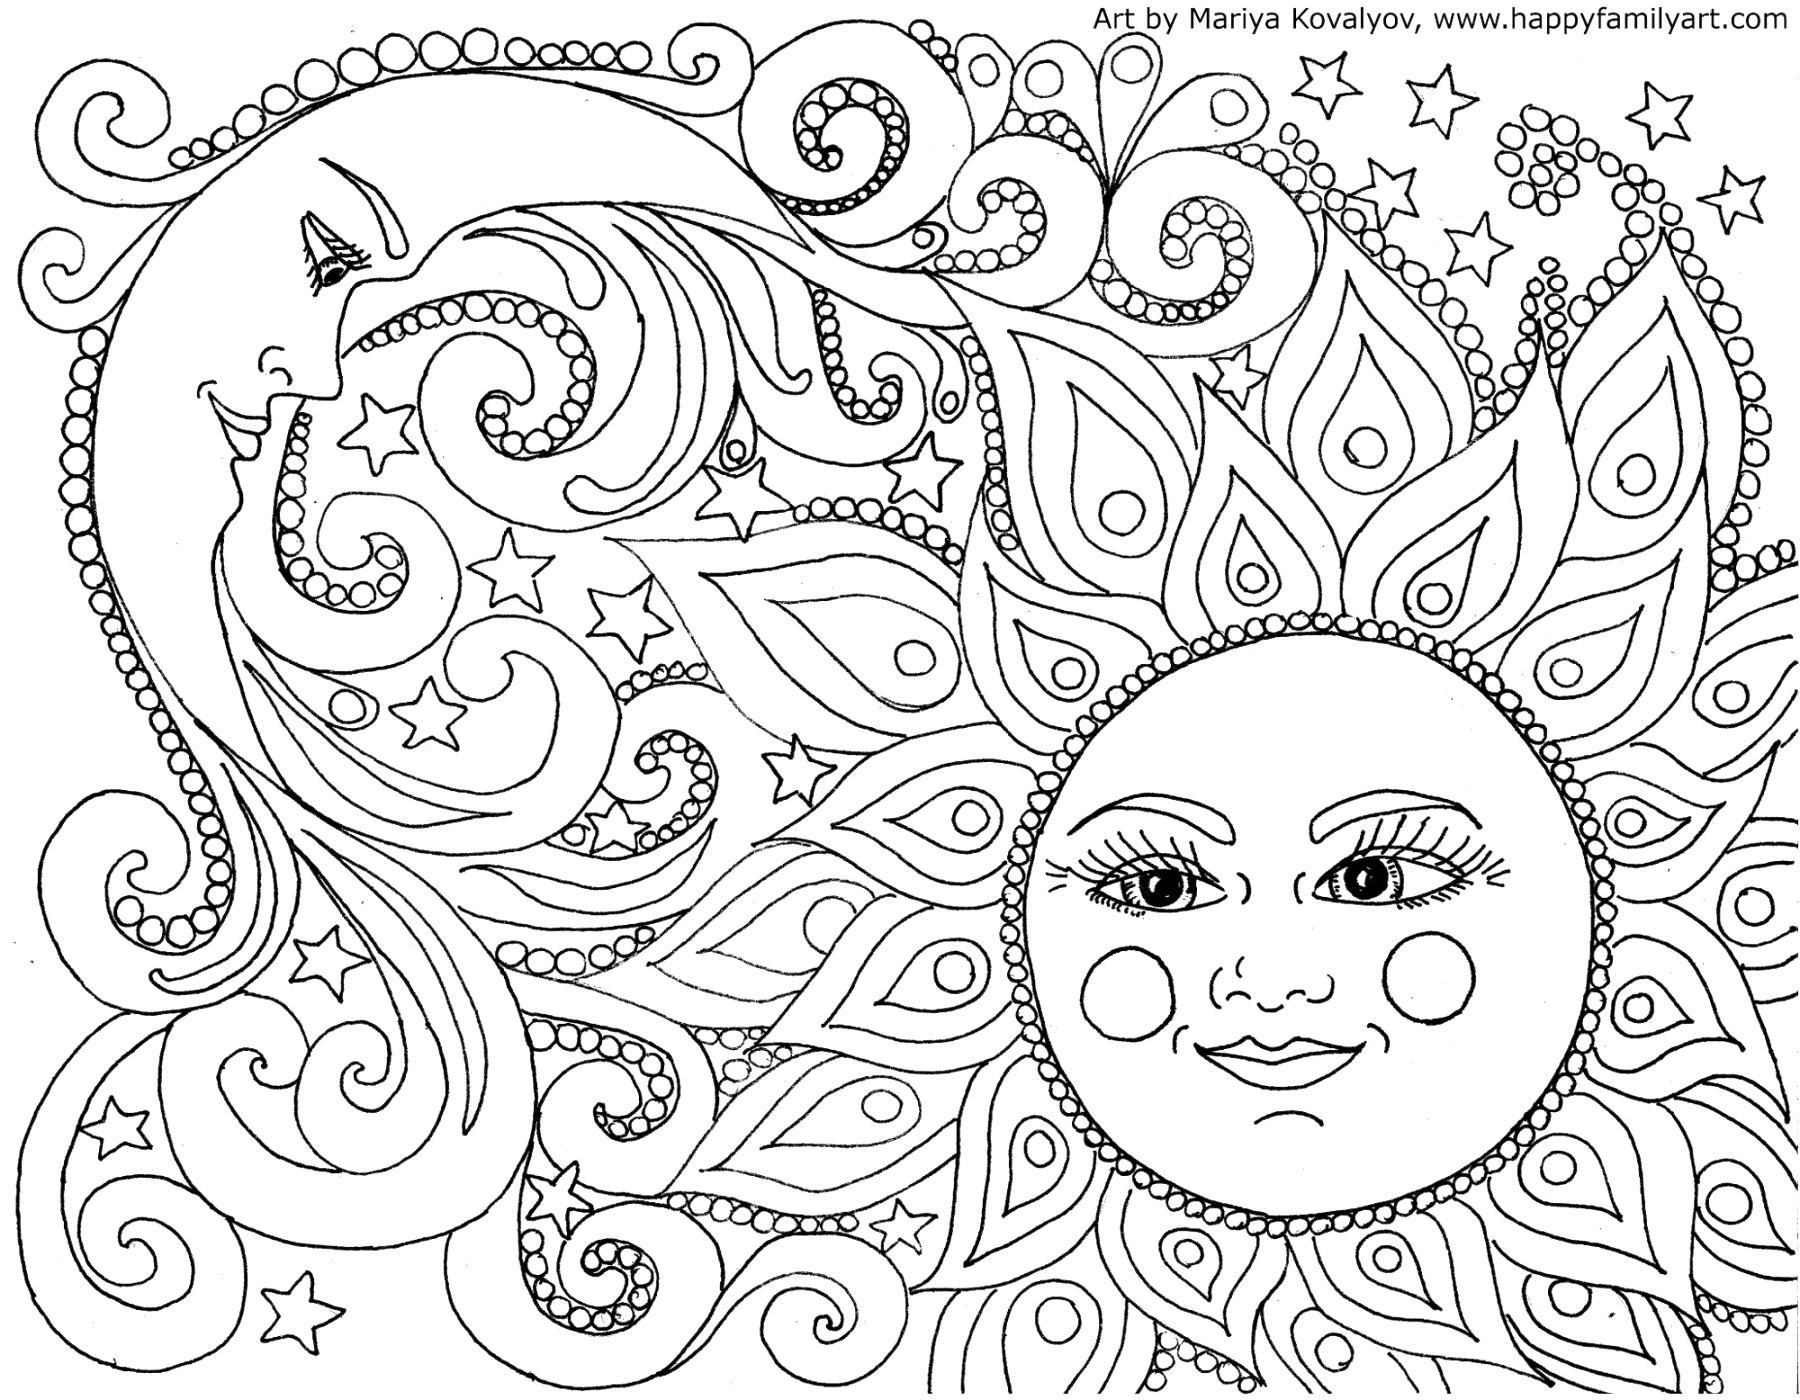 excelent printable coloring pages Printable Coloring Page